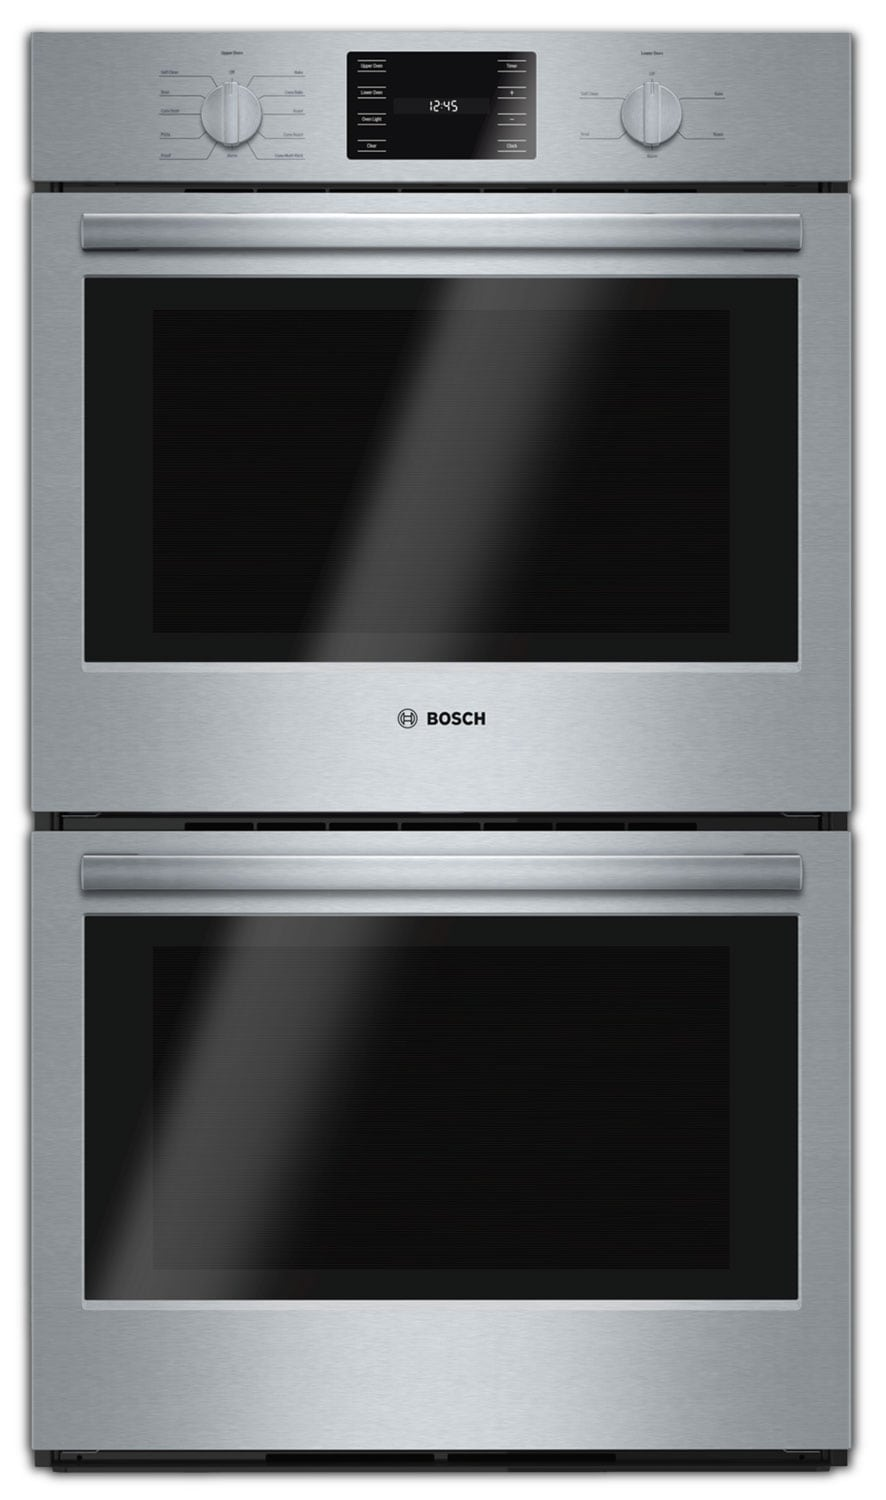 Cooking Products - Bosch Stainless Steel Double Wall Oven (9.2 Cu. Ft.) - HBL5651UC